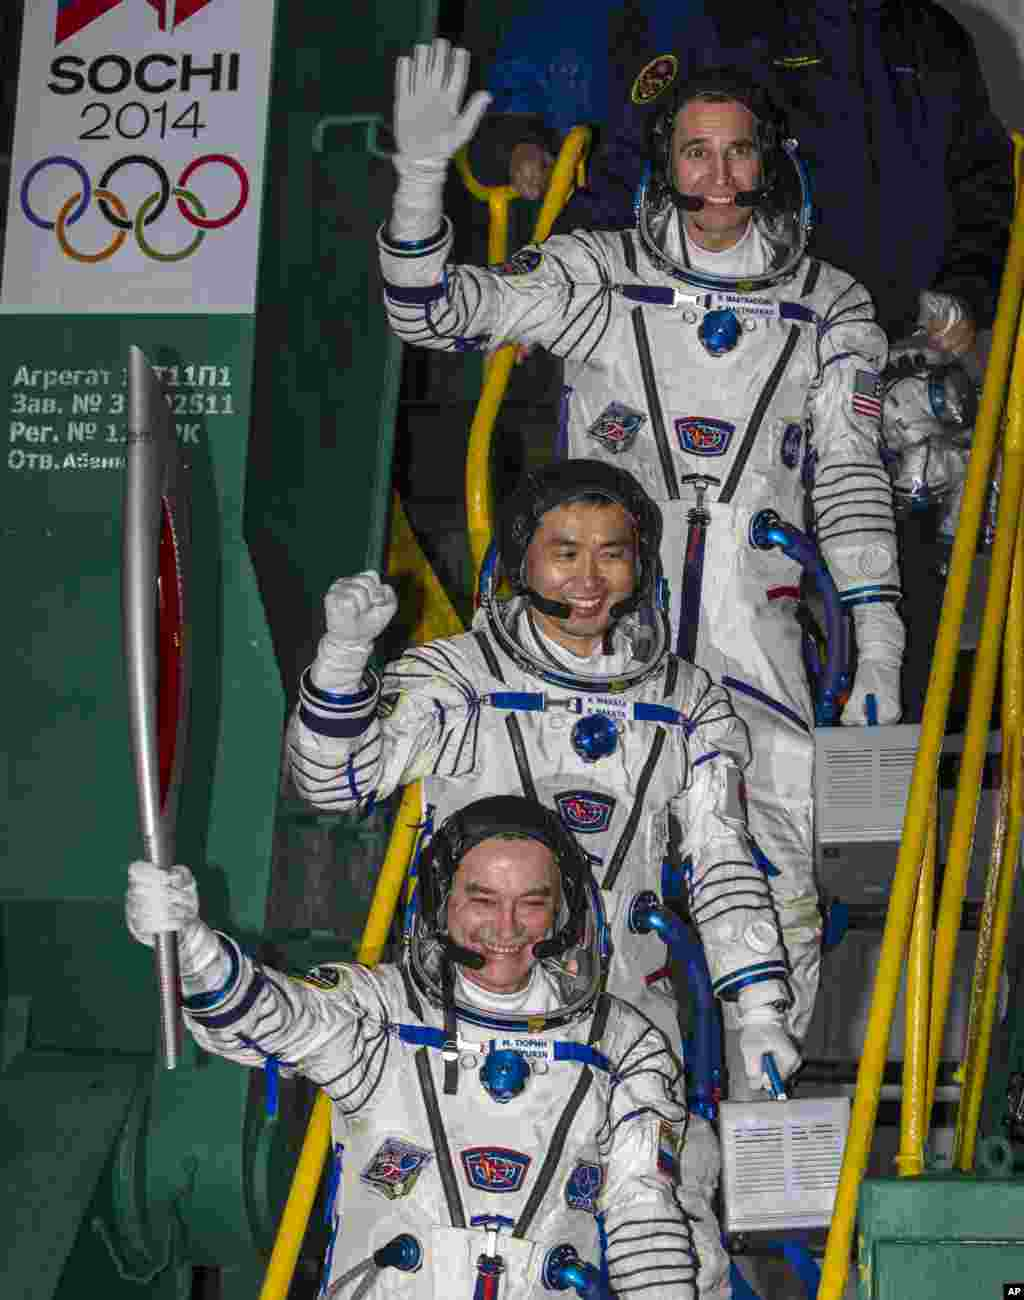 Japanese astronaut Koichi Wakata, center, Russian cosmonaut Mikhail Tyurin, bottom and U.S. astronaut Rick Mastracchio, pose with an Olympic torch prior the launch of Soyuz-FG rocket at the Russian leased Baikonur cosmodrome, Kazakhstan, Nov. 7, 2013.